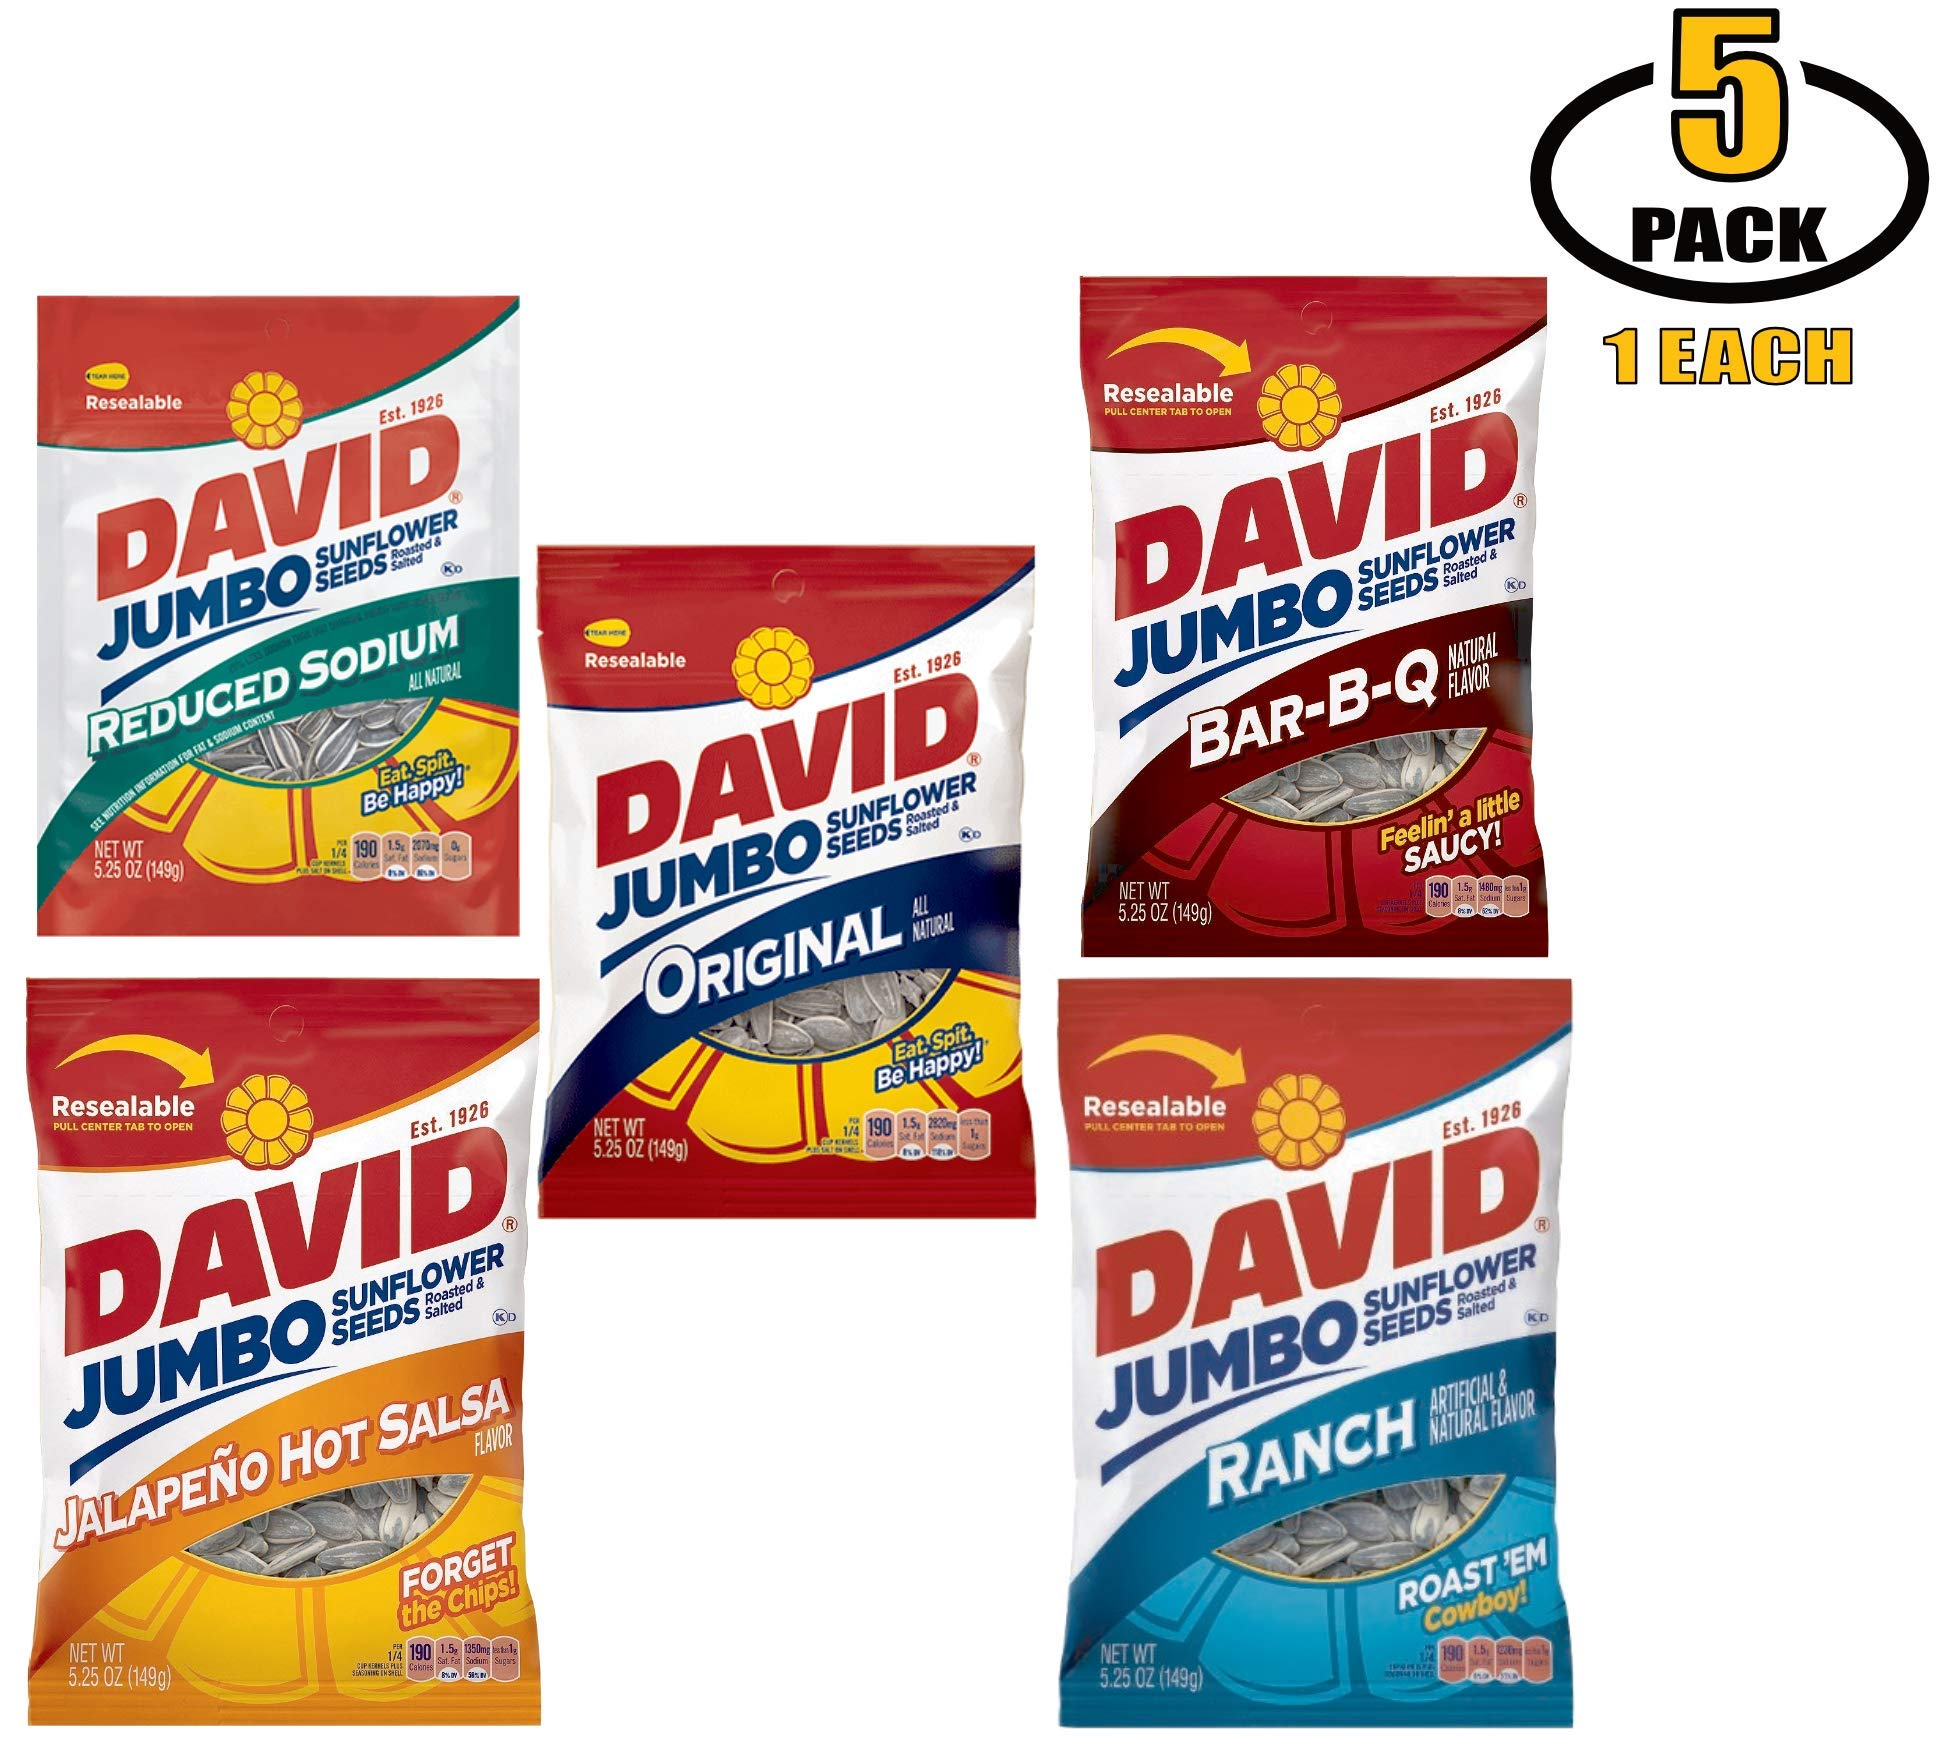 David Jumbo Sunflower Seeds Variety Pack - 5 Flavors of Davids Sun Flower Seeds: Ranch, BBQ, Jalapeno Hot Salsa, Low Salt Reduced Sodium, and Original Flavor - BASED BOX Bundle (5.25oz Bag, Pack of 5)